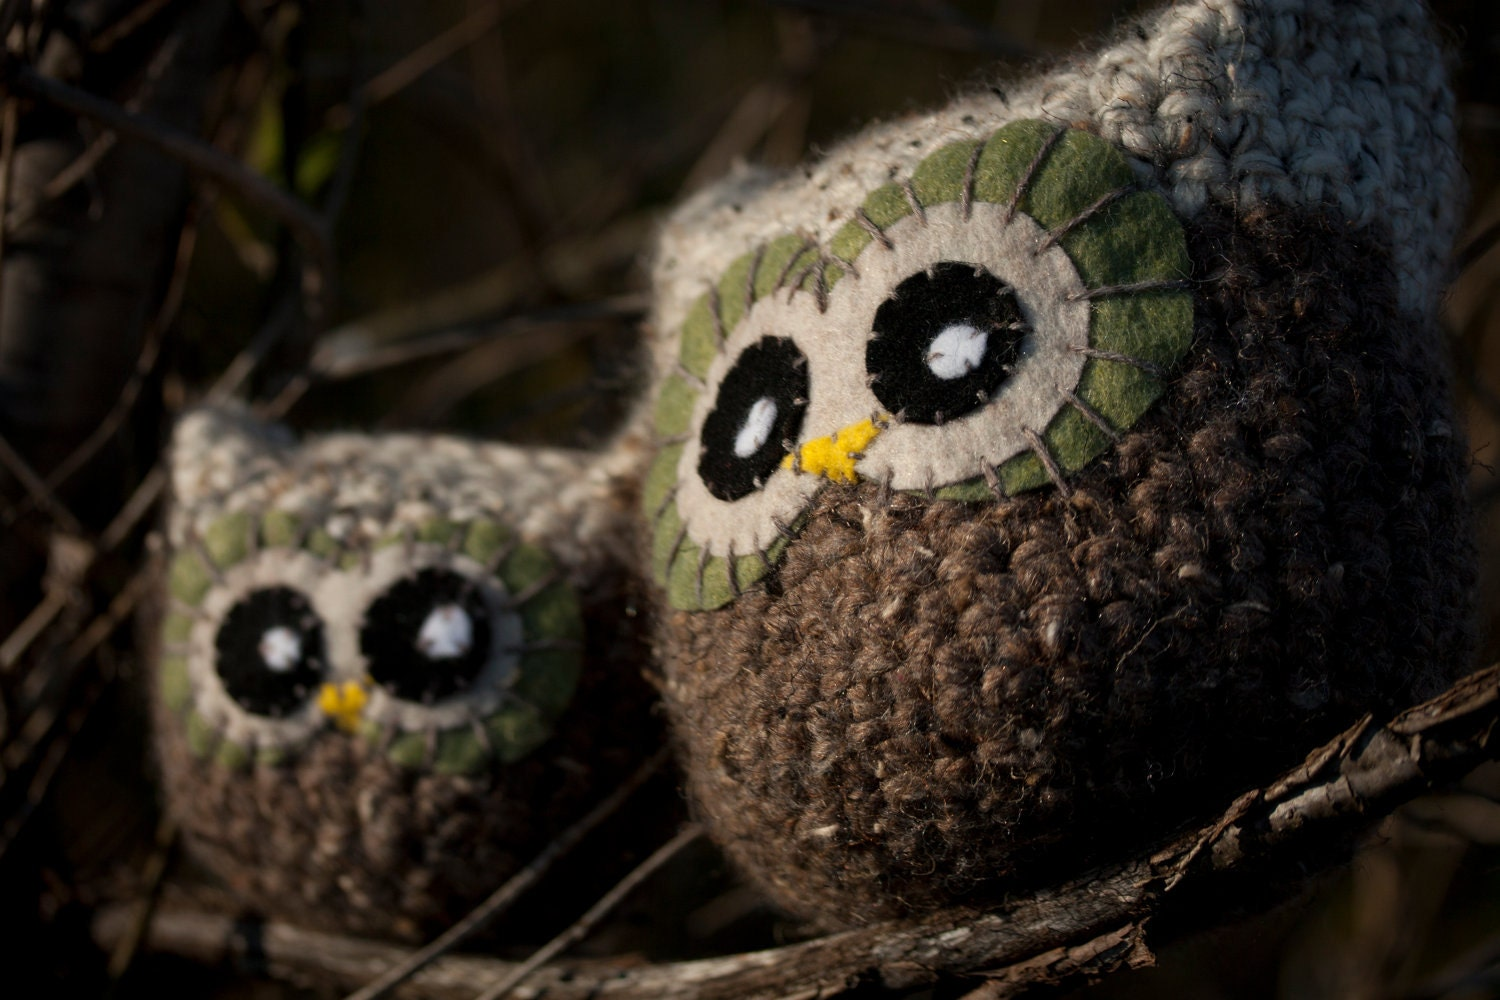 Owl Amigurumi - Brown And Tan, Cabin Decor, Autumn, Pillow, Plush, Made To Order - JollyOlChap